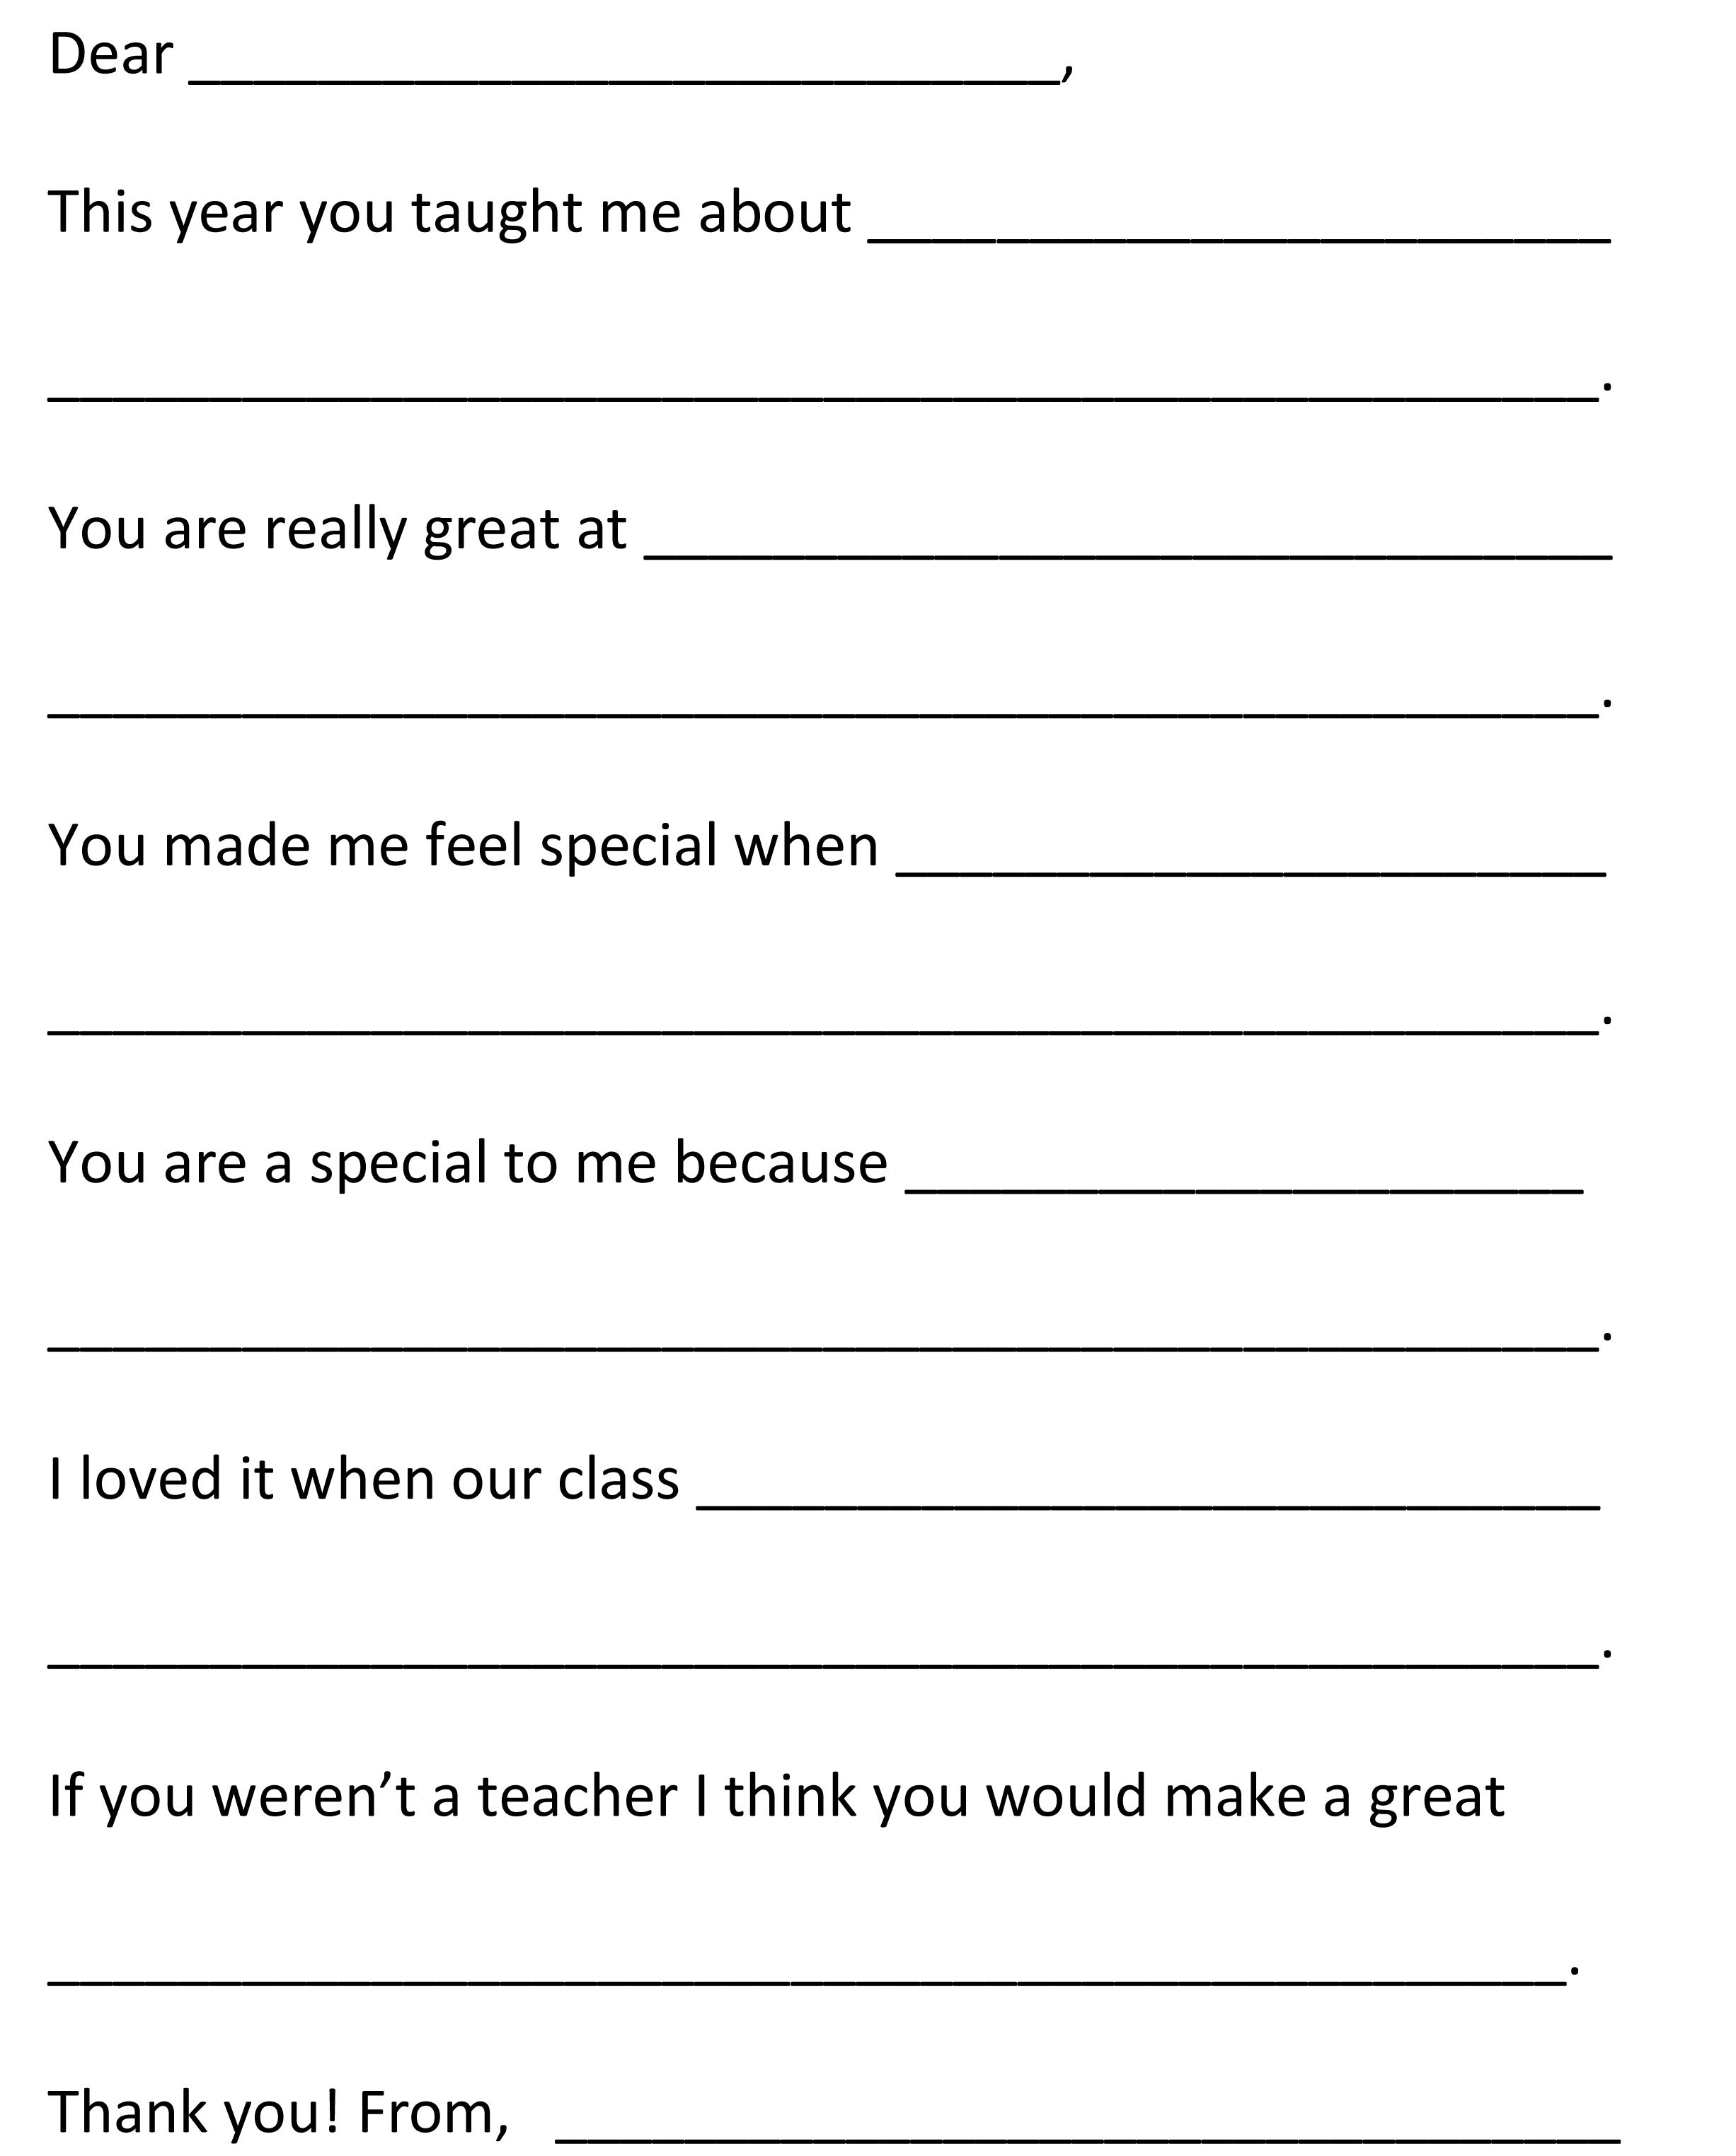 Dear Teacher End Of Year Fill In The Blank Letter To Teacher  For